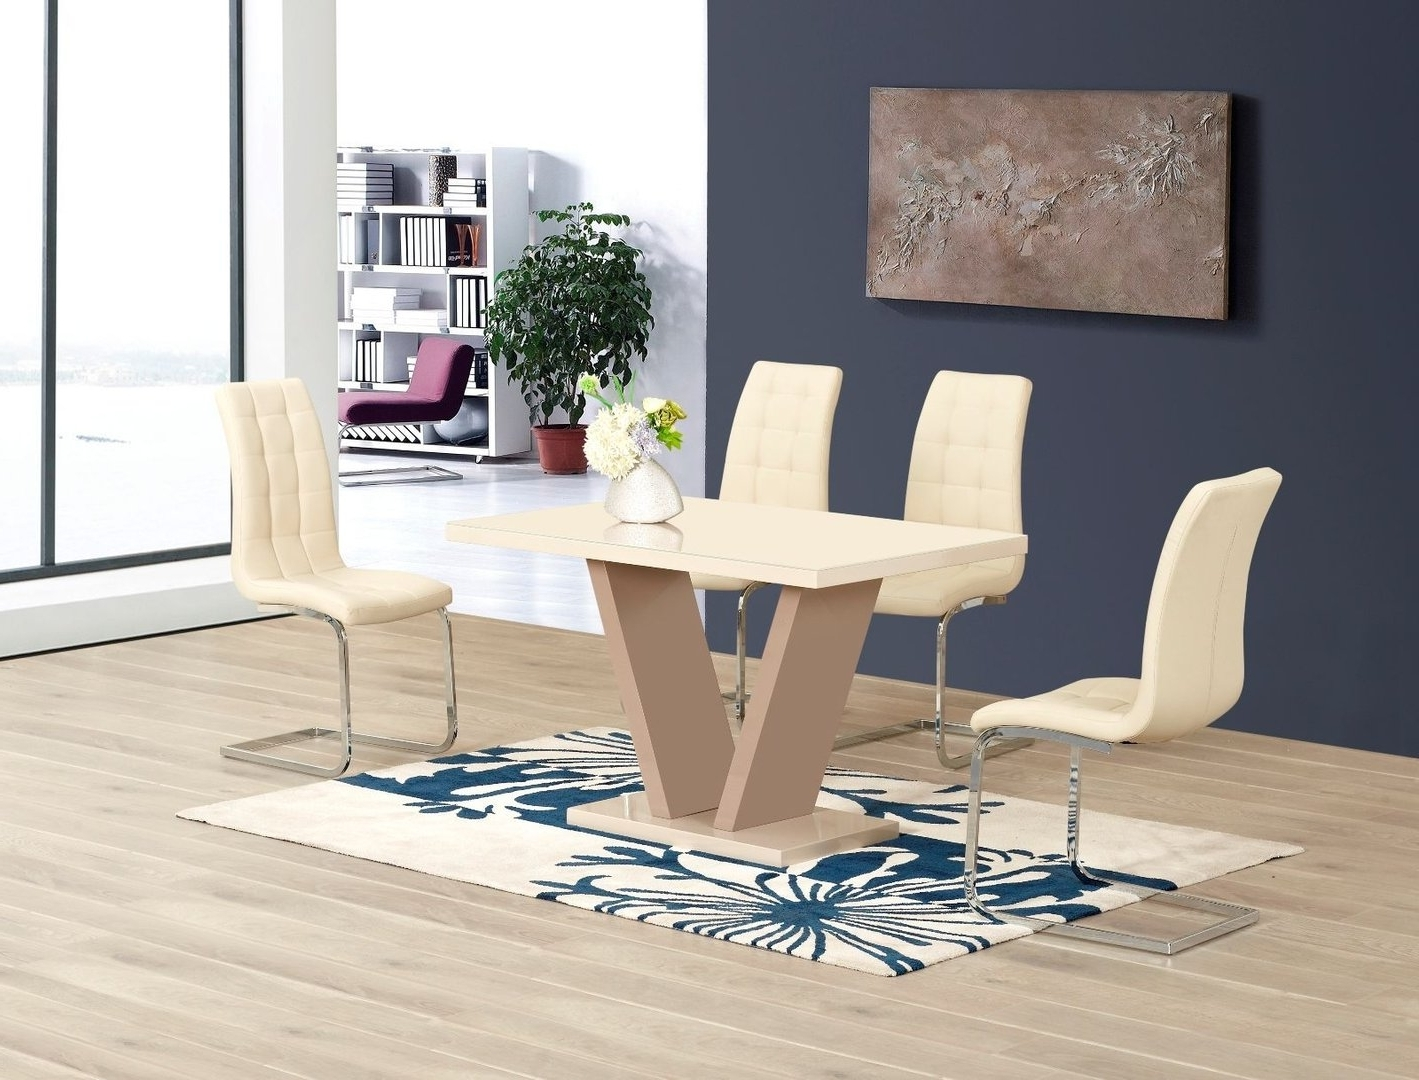 Extendable Dining Tables With 6 Chairs throughout Well-known Cream High Gloss Glass Dining Table And 6 Chairs - Homegenies